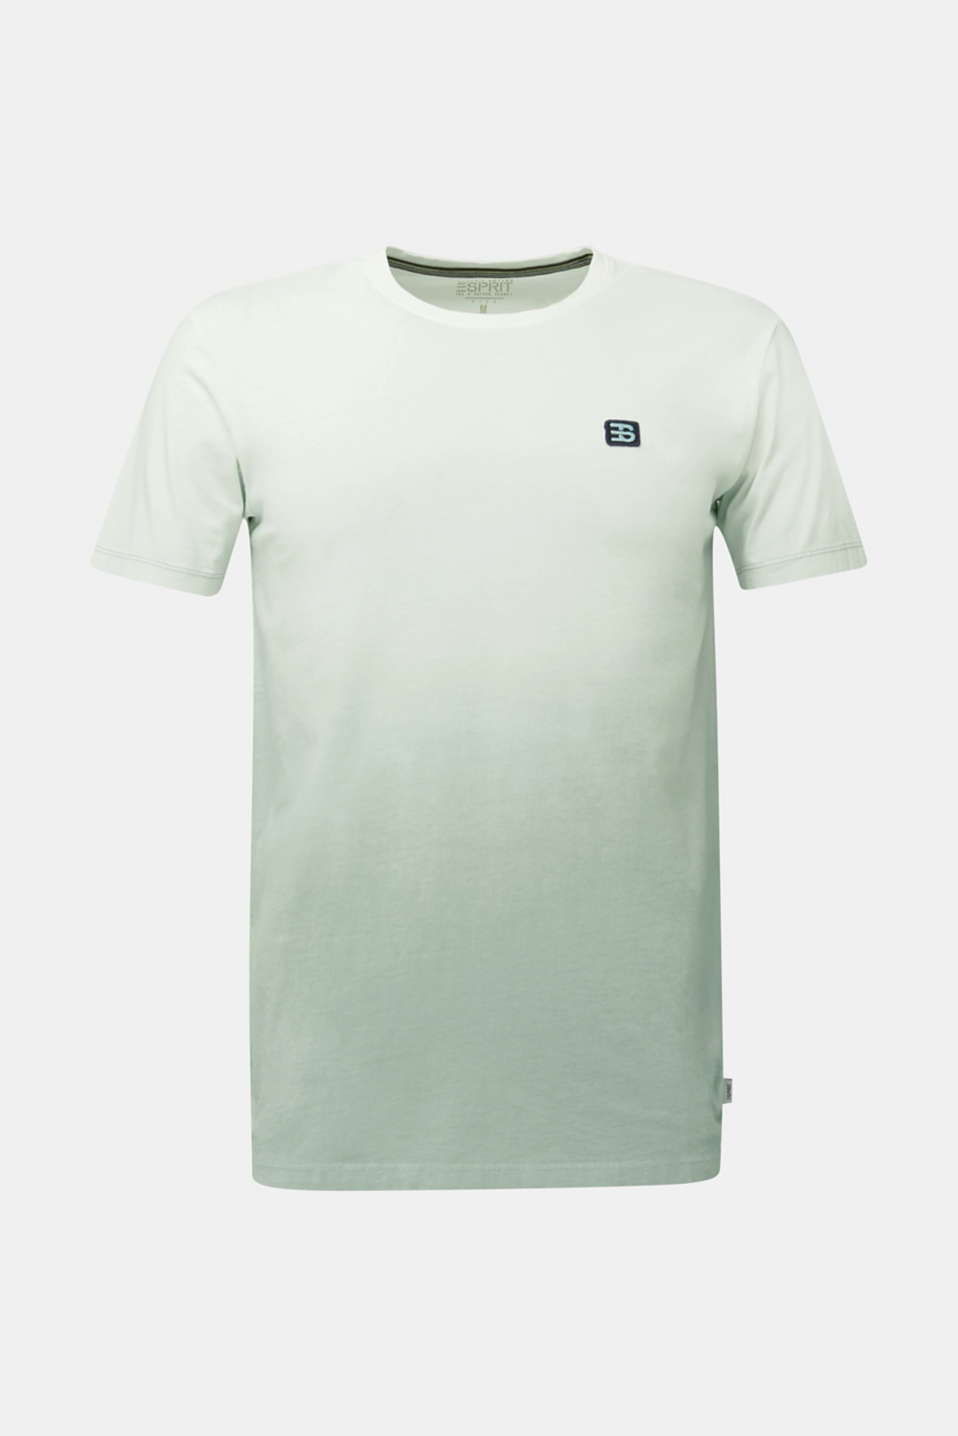 Jersey T-shirt with graduated colours, 100% cotton, TEAL GREEN 2, detail image number 8